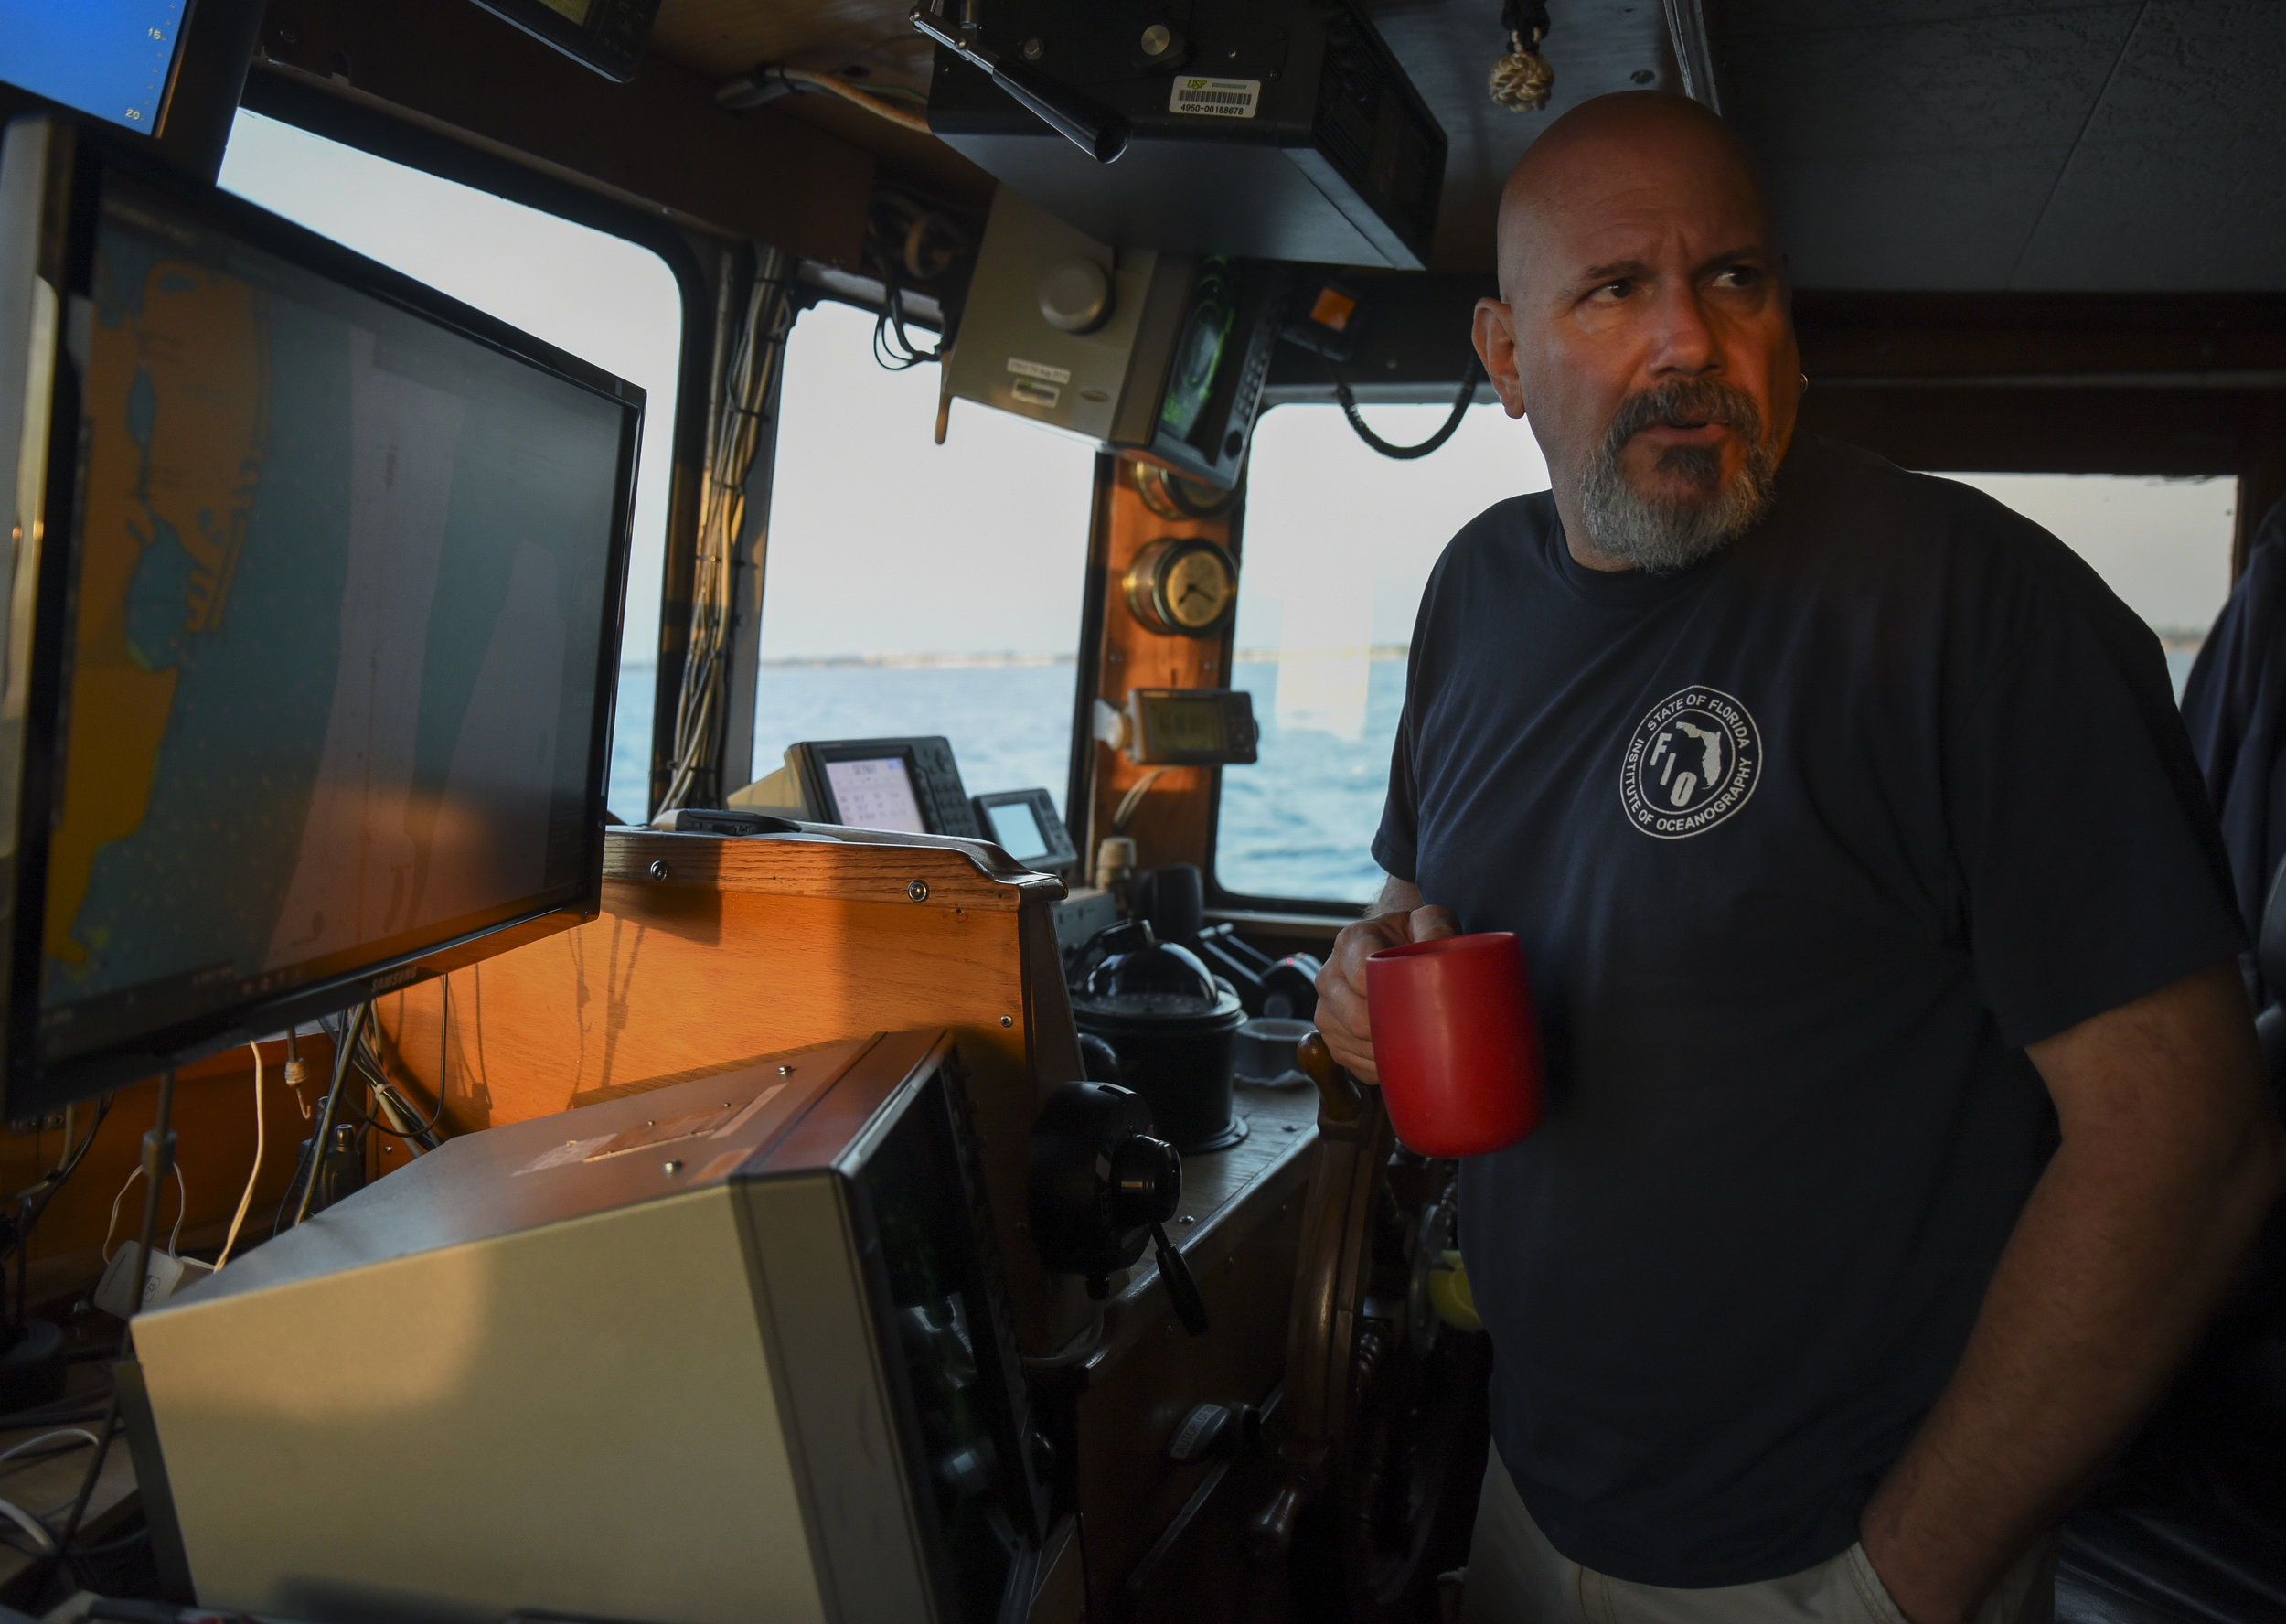 Captain Dave Coy, 56, of the R/V Bellows looks across the vessel's bridge while overseeing the boat's journey through the Tampa Bay channel at sunrise during a research cruise on Monday, April 17, 2017. Students and scientists from New College of Florida, the University of North Florida and Mote Marine Laboratory, aboard the research vessel worked to catch and release a variety of shark species, outfitting them with trackers to study their coastal habits.